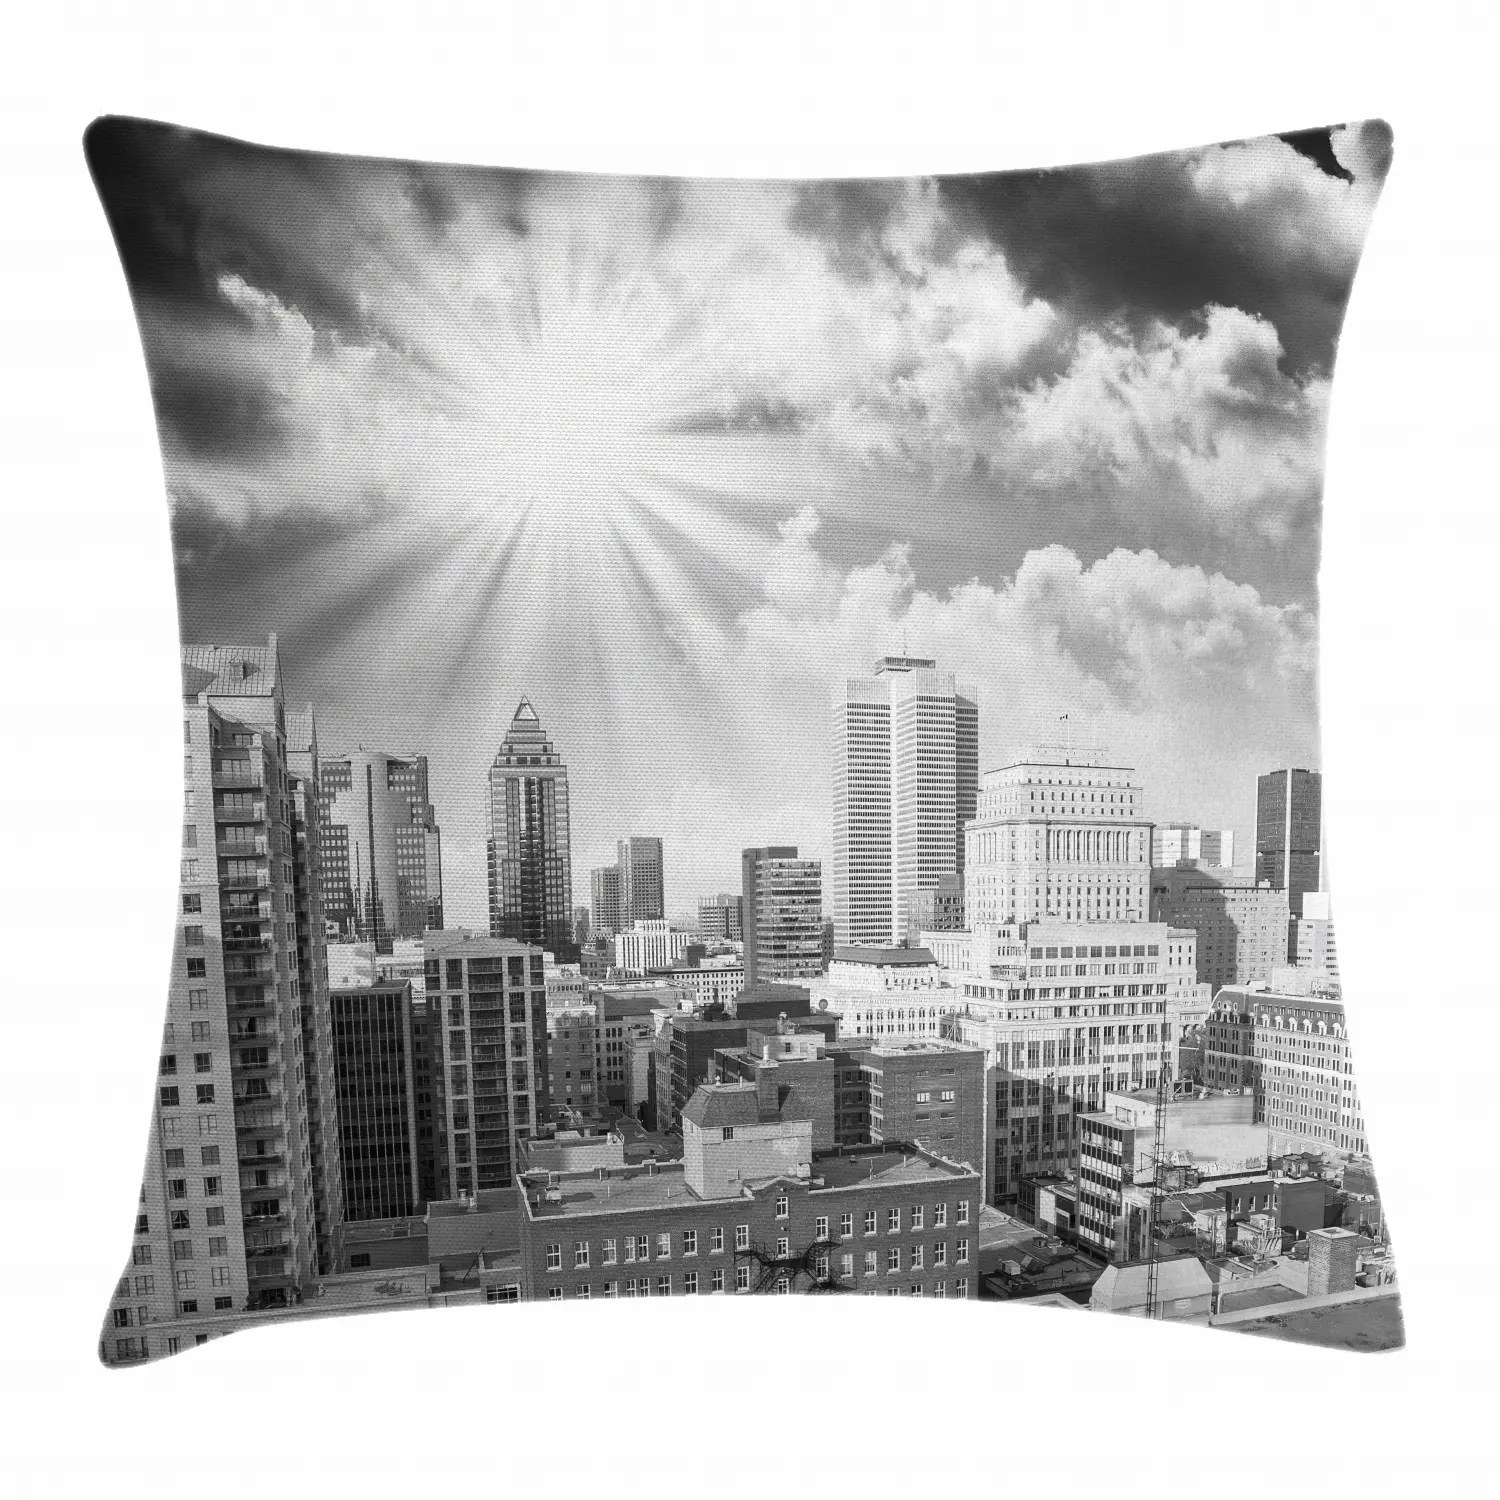 Monochrome Throw Pillow Cases Cushion Covers Home Decor 8 Sizes